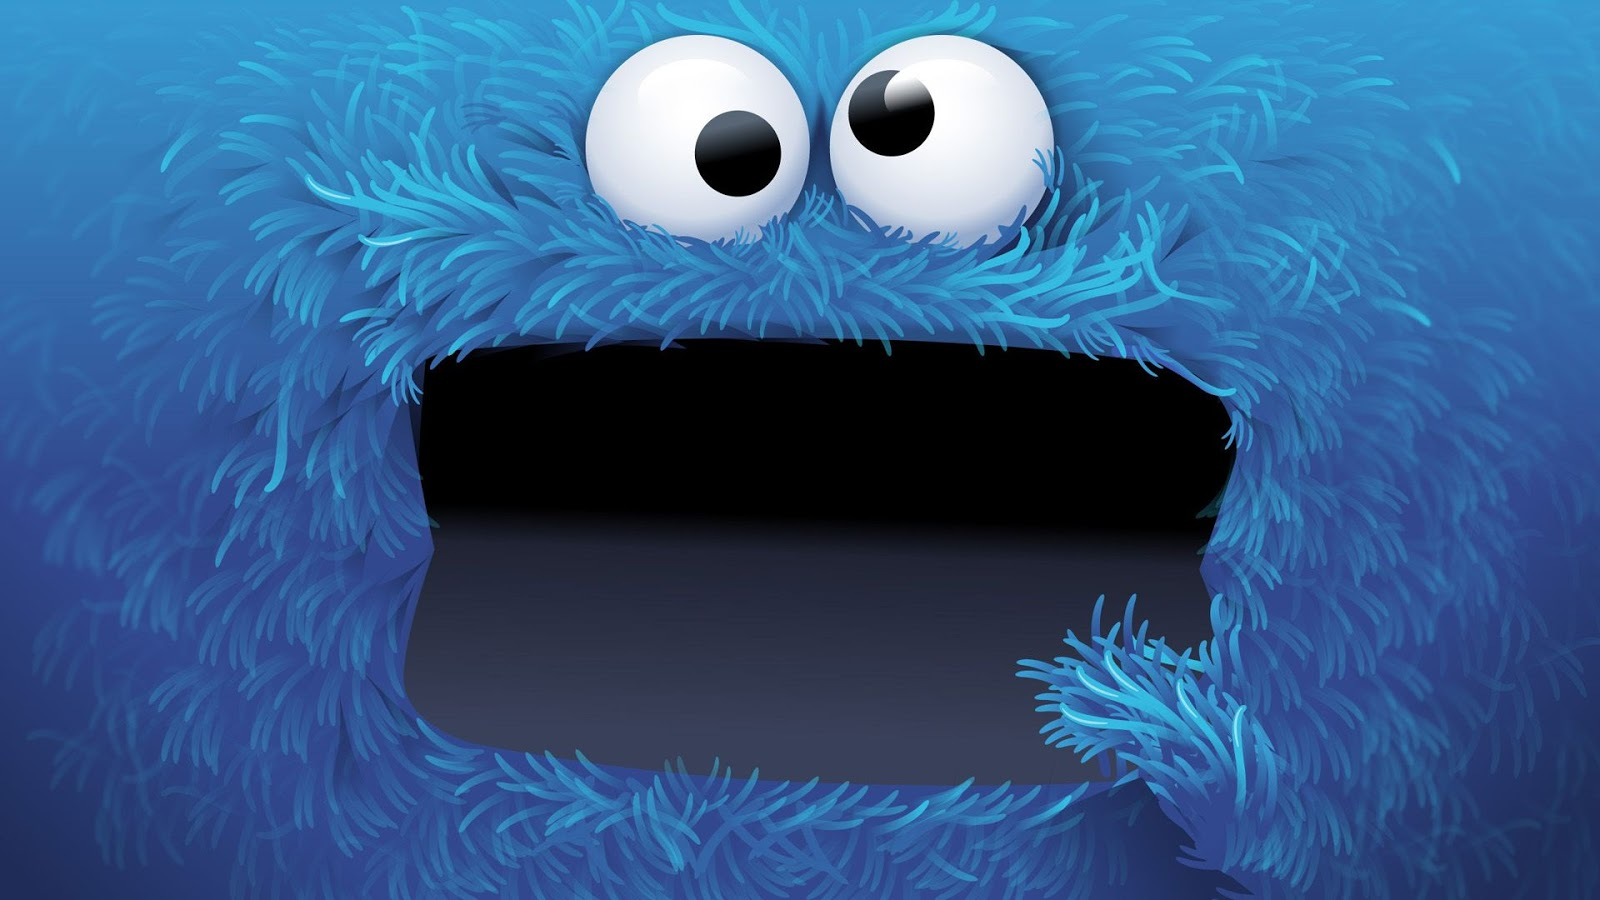 Mystery Wallpaper Cookie Monster 1600x900